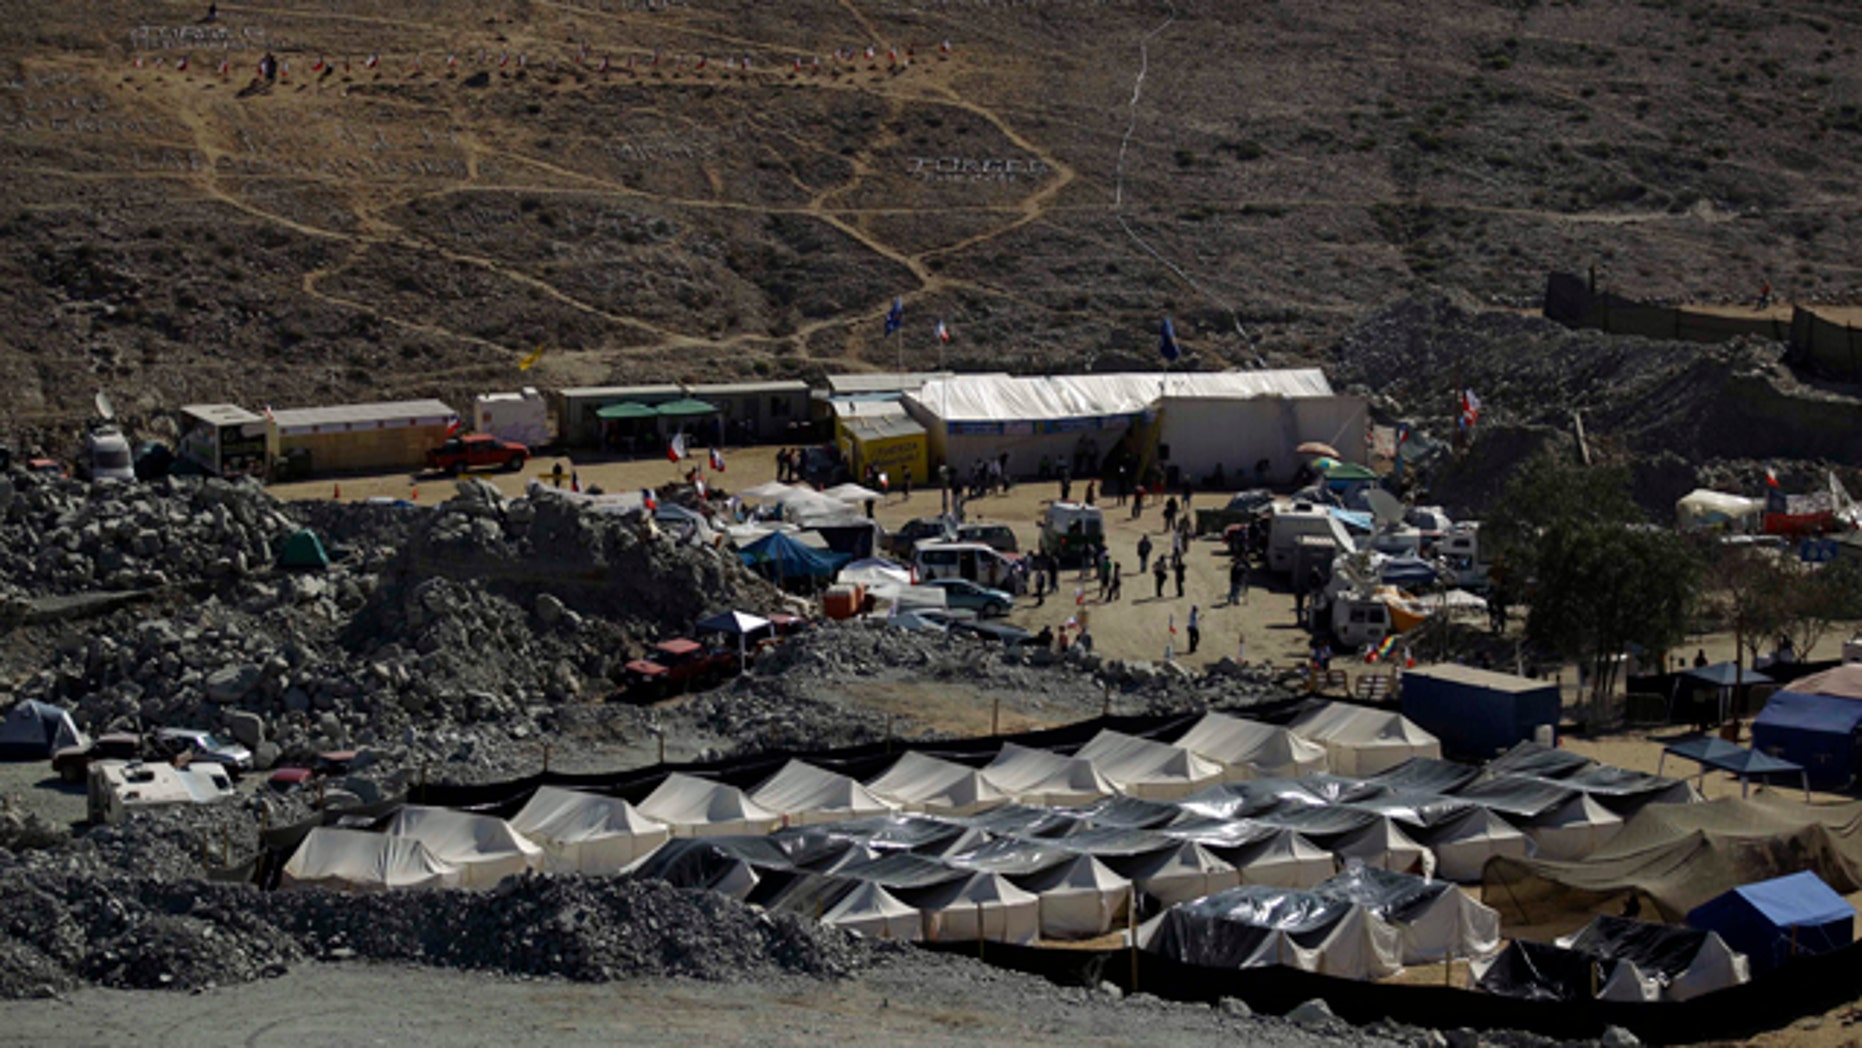 The camp where relatives of 33 trapped miners wait for news is seen outside the San Jose mine in Copiapo, Chile, Wednesday, Aug. 25, 2010.